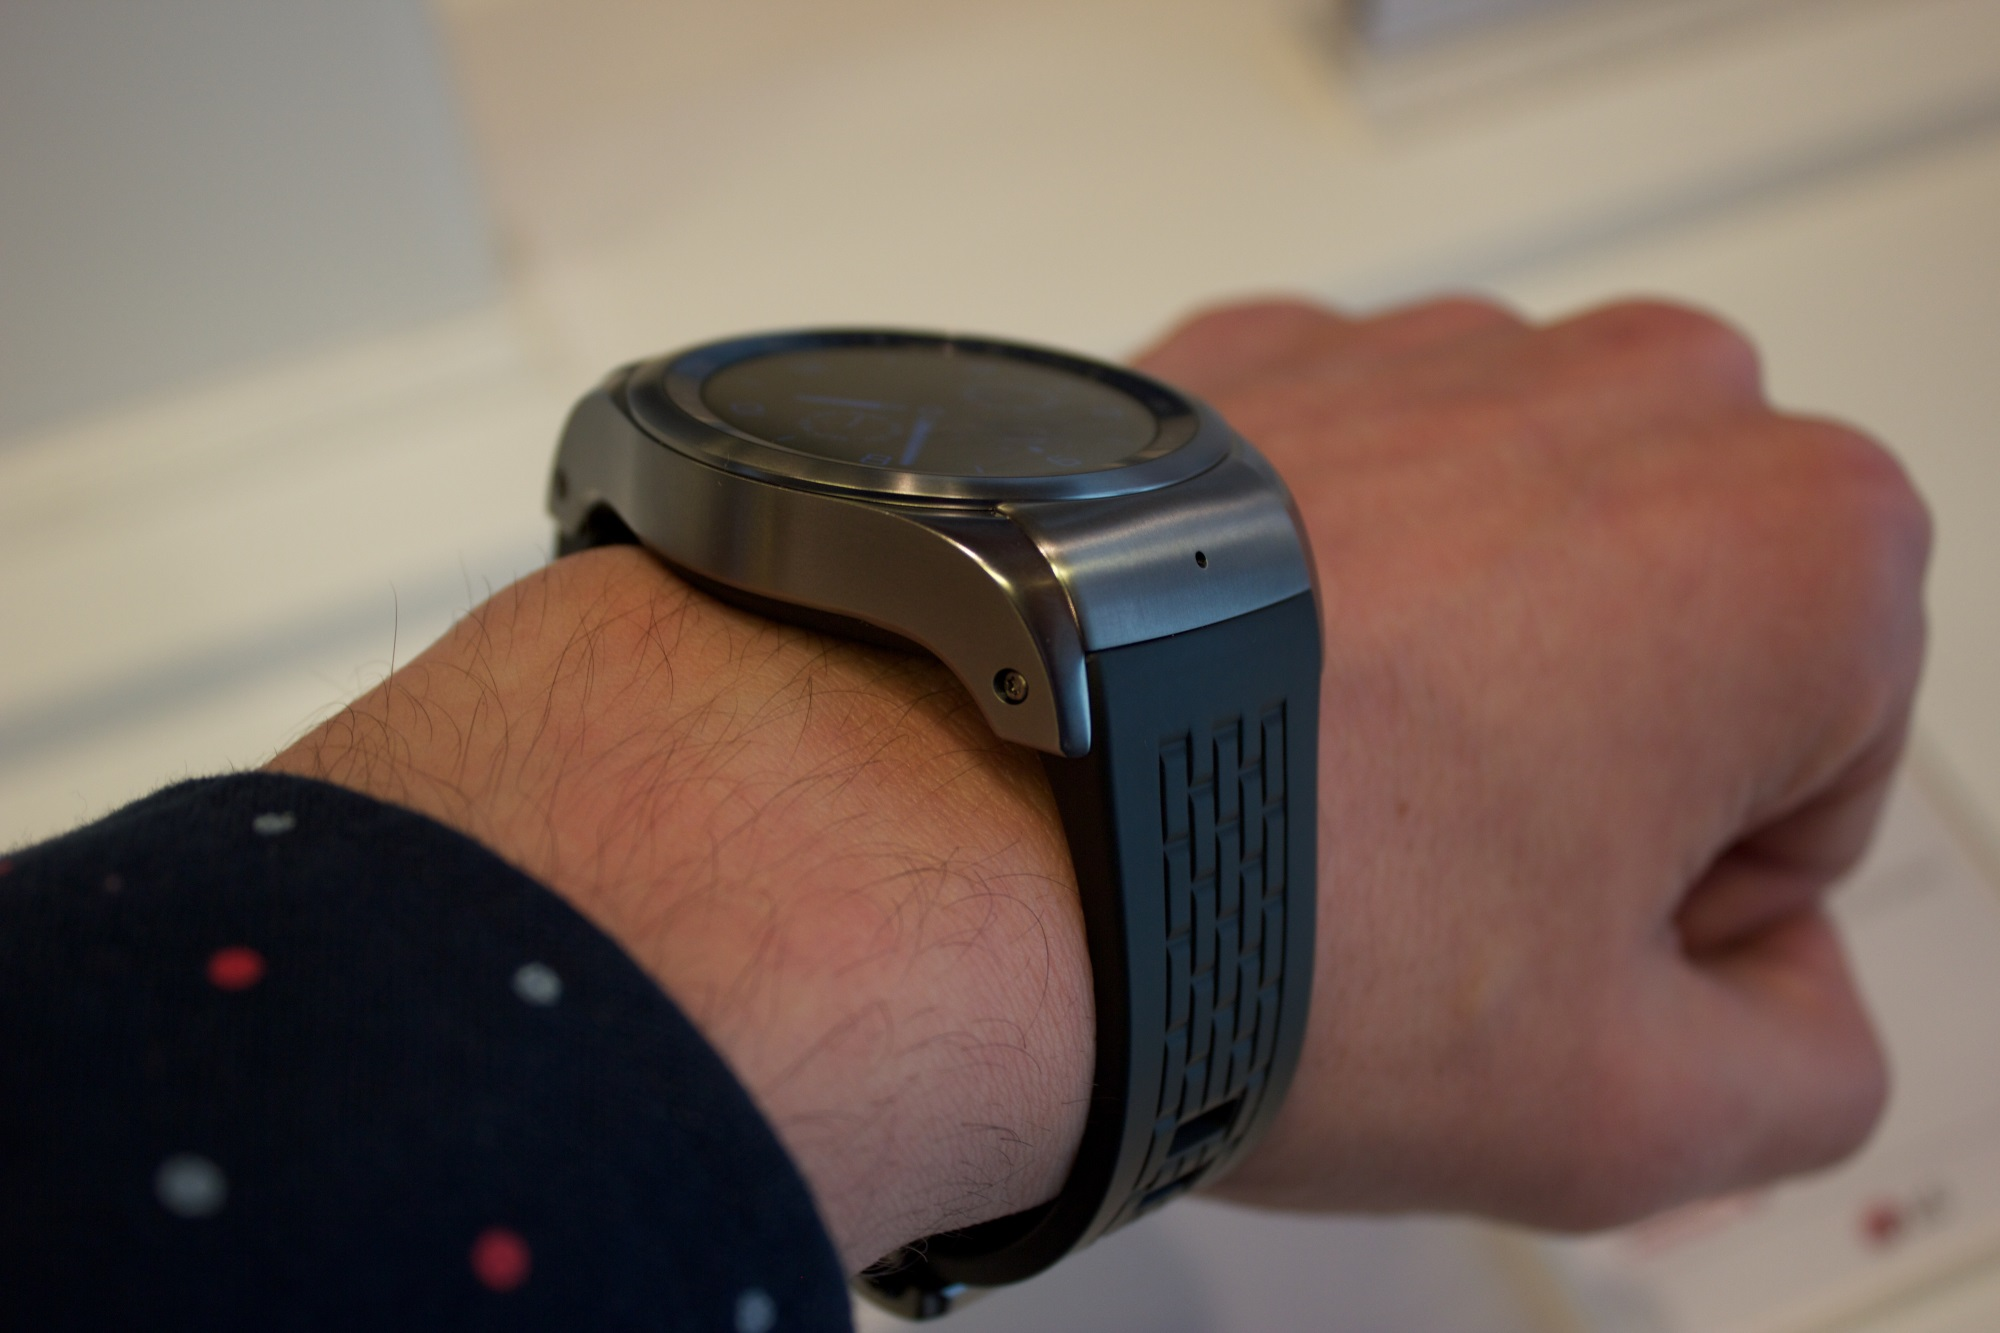 LG Watch Urbane - hands-on (6)